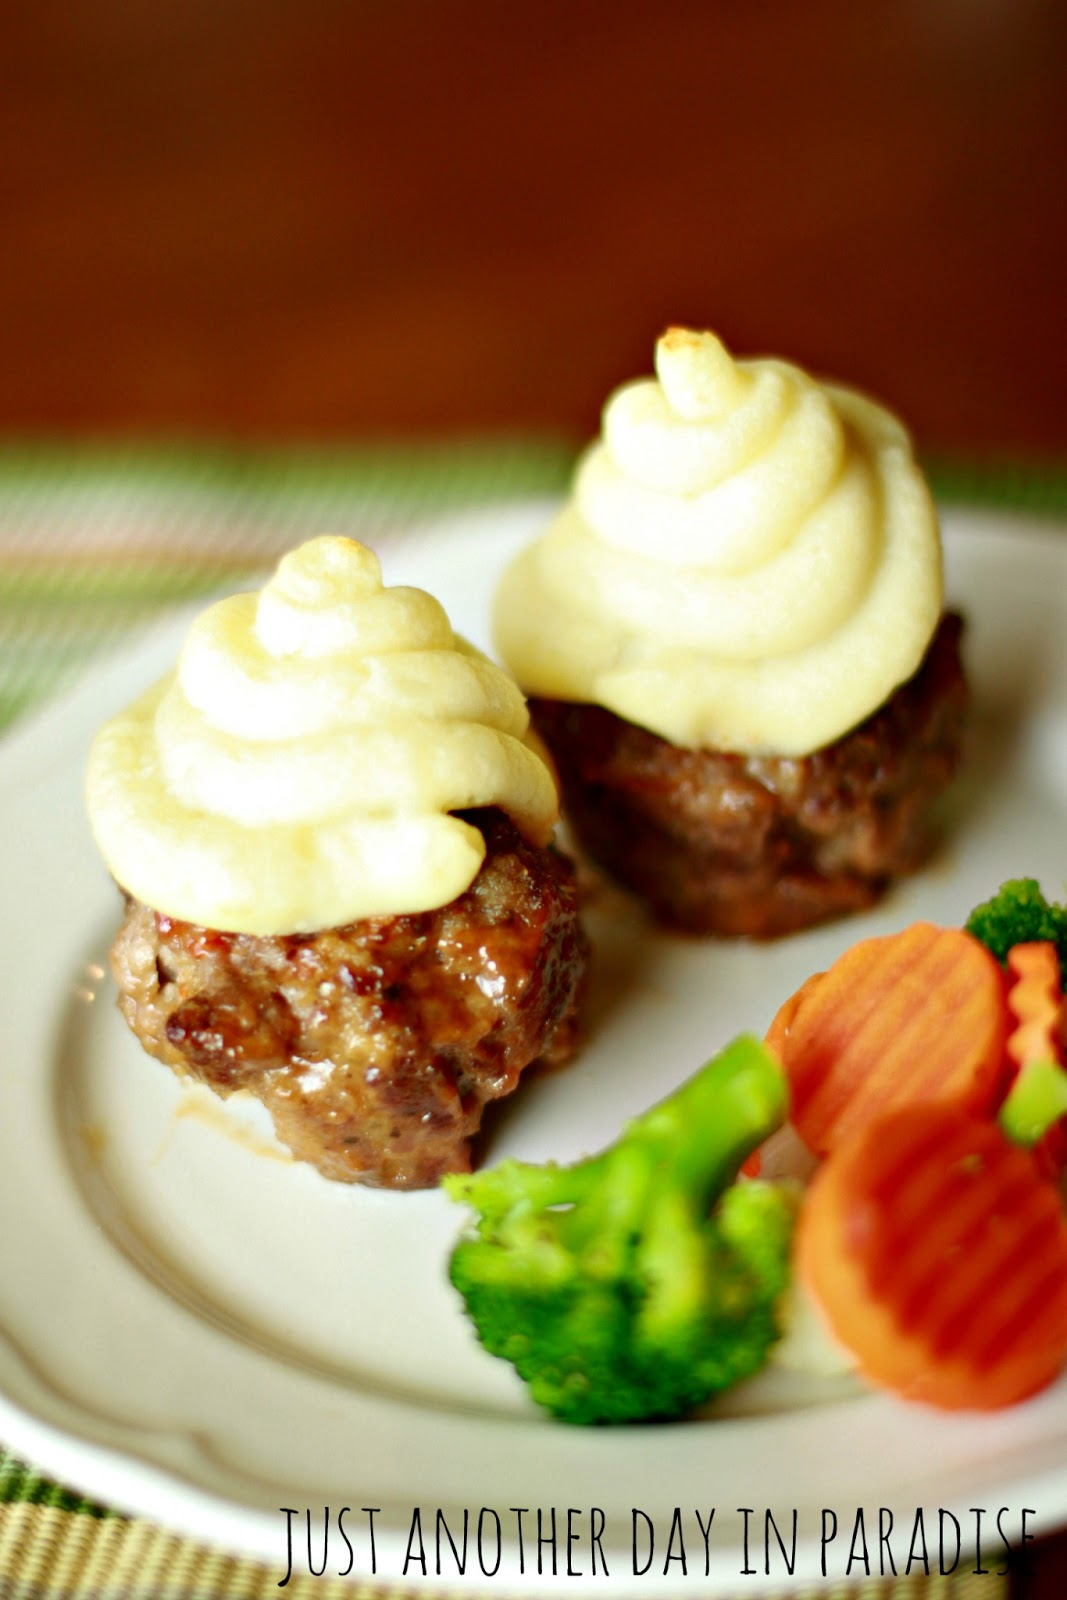 Just Another Day in Paradise: Mashed Potato Topped Mini Meatloaves